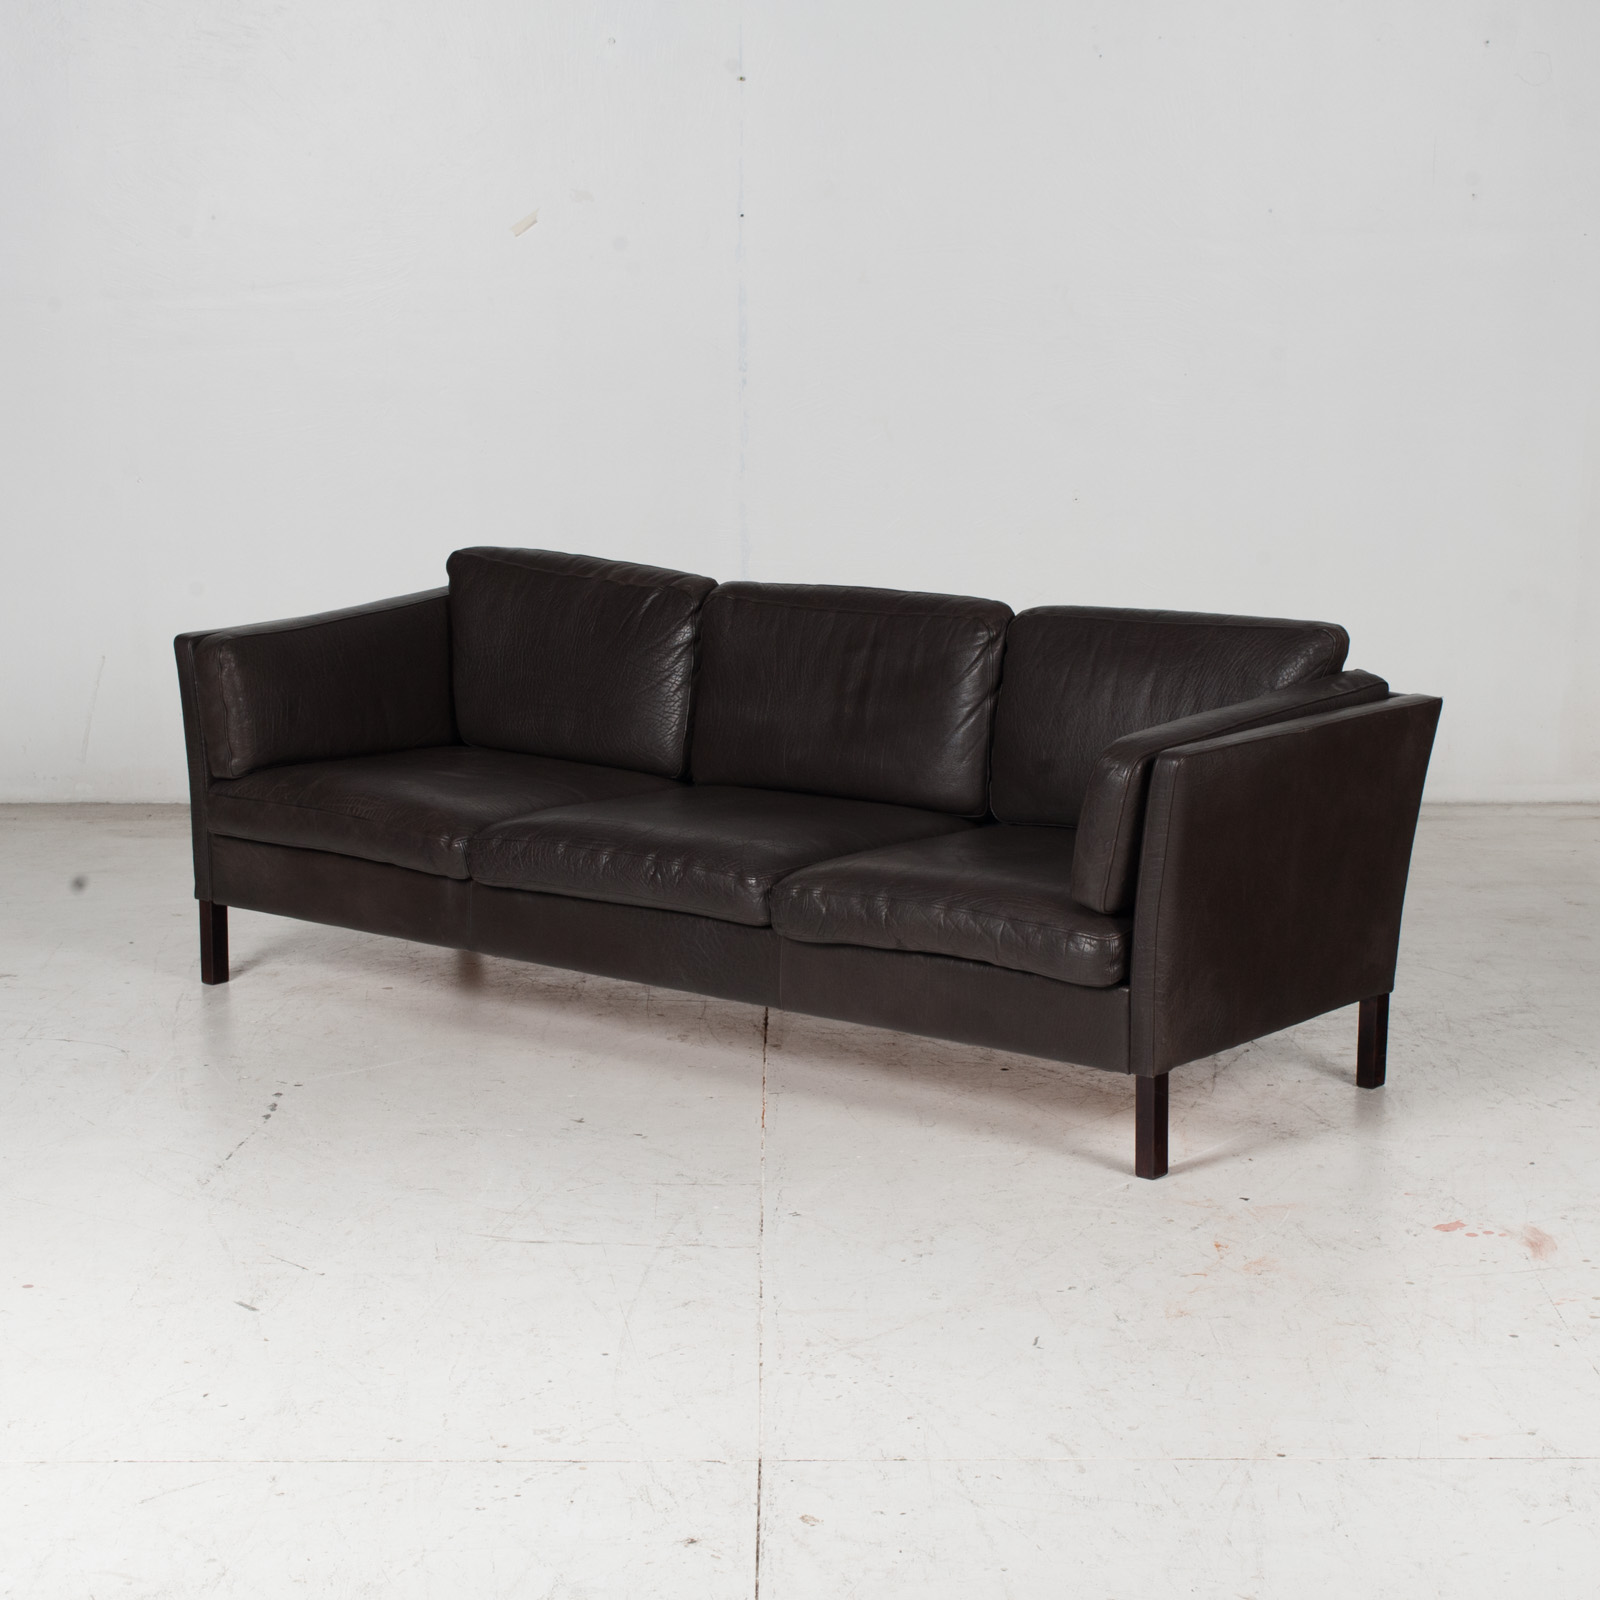 3 Seat Sofa In Dark Brown Leather, 1960s, Denmark 4